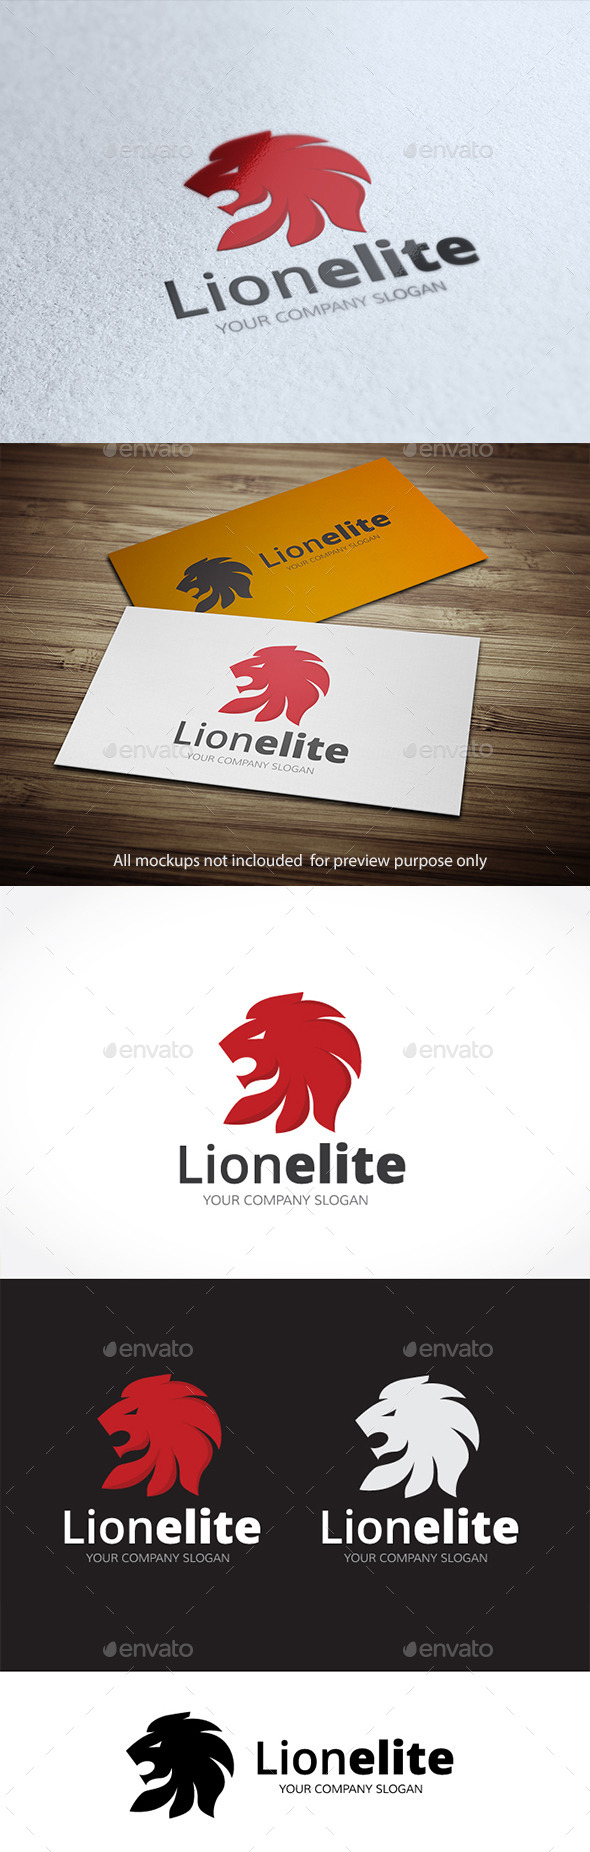 GraphicRiver Lion Elite 10525915